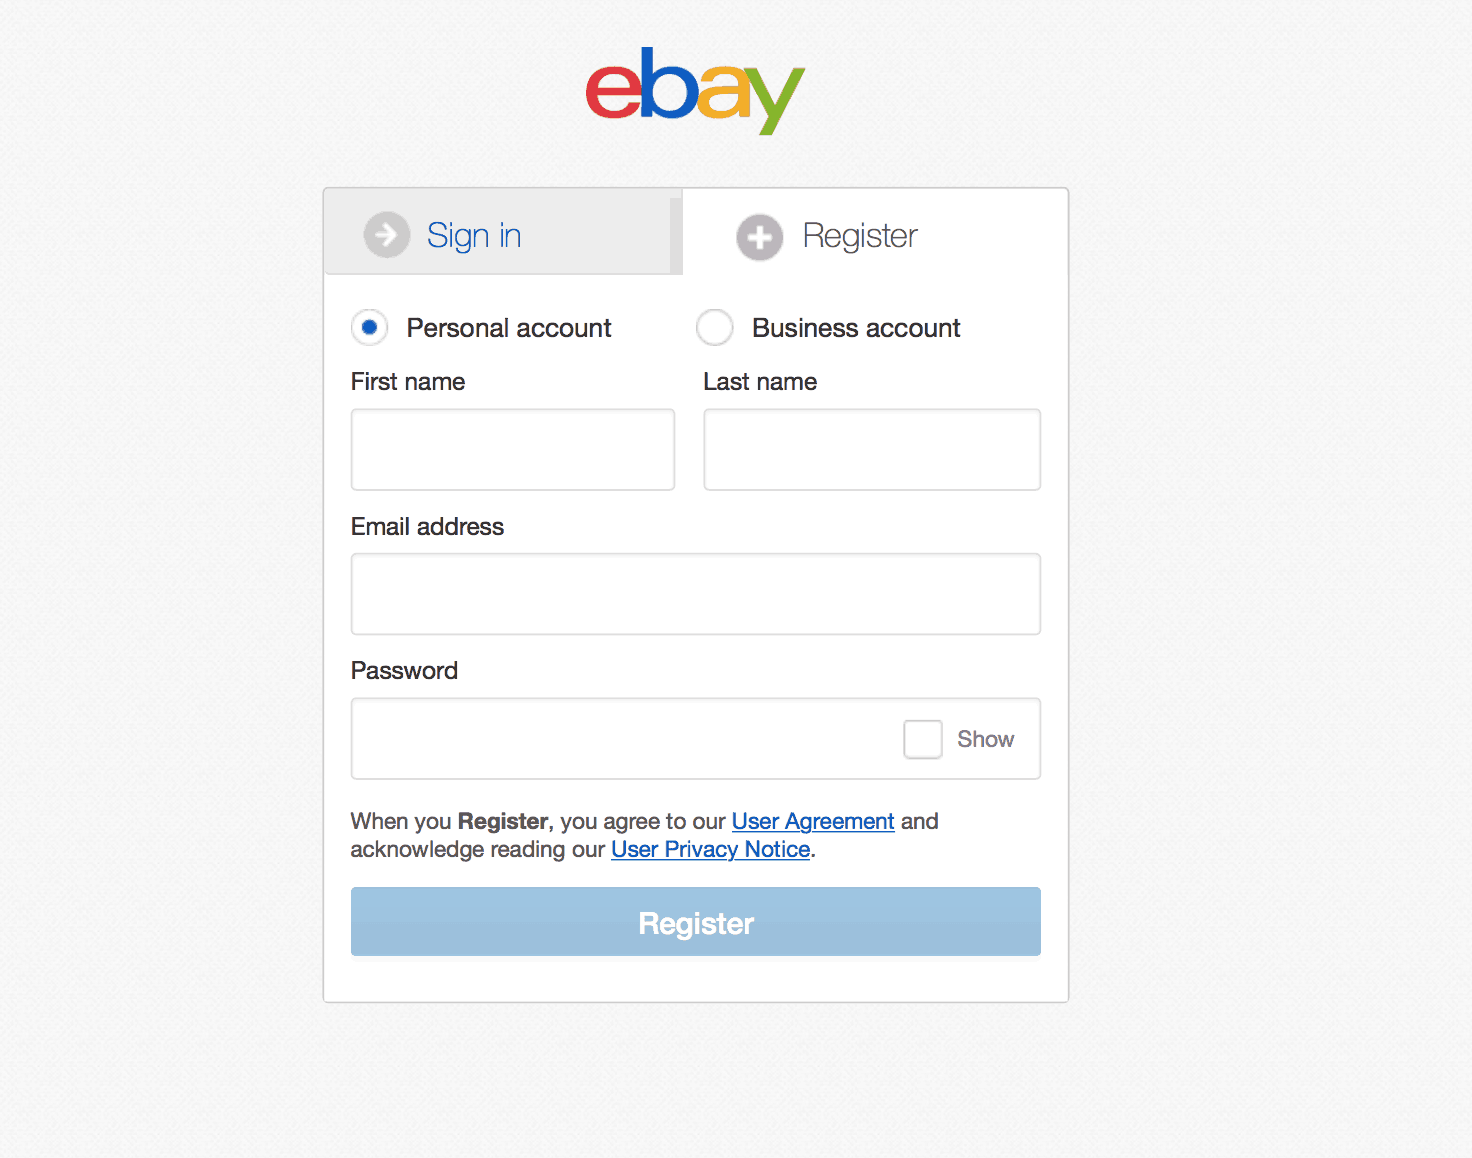 A screenshot of the ebay app